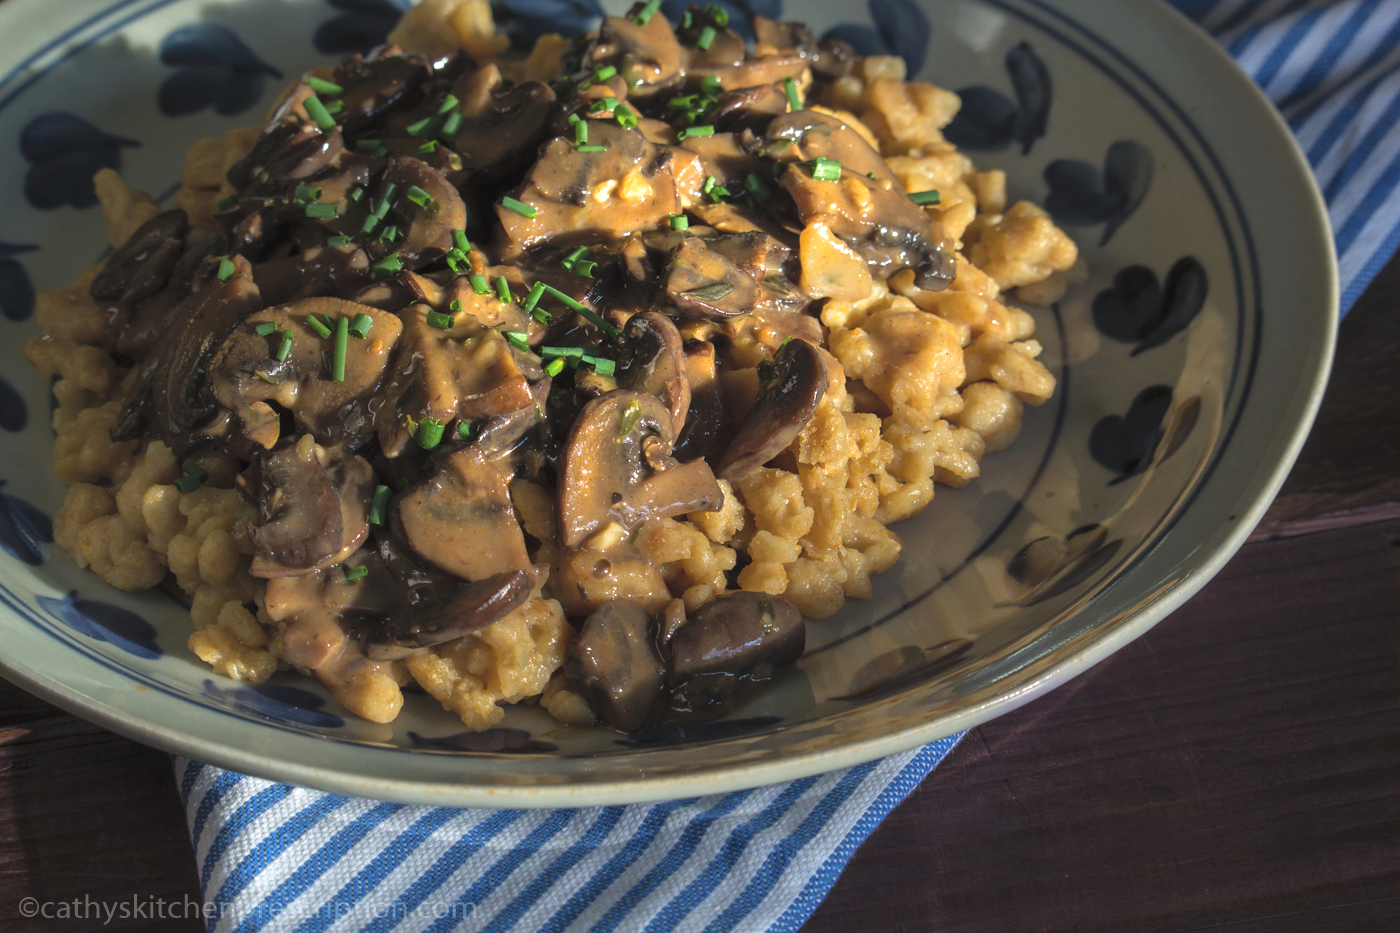 Whole Wheat Spaetzle with Mushrooms